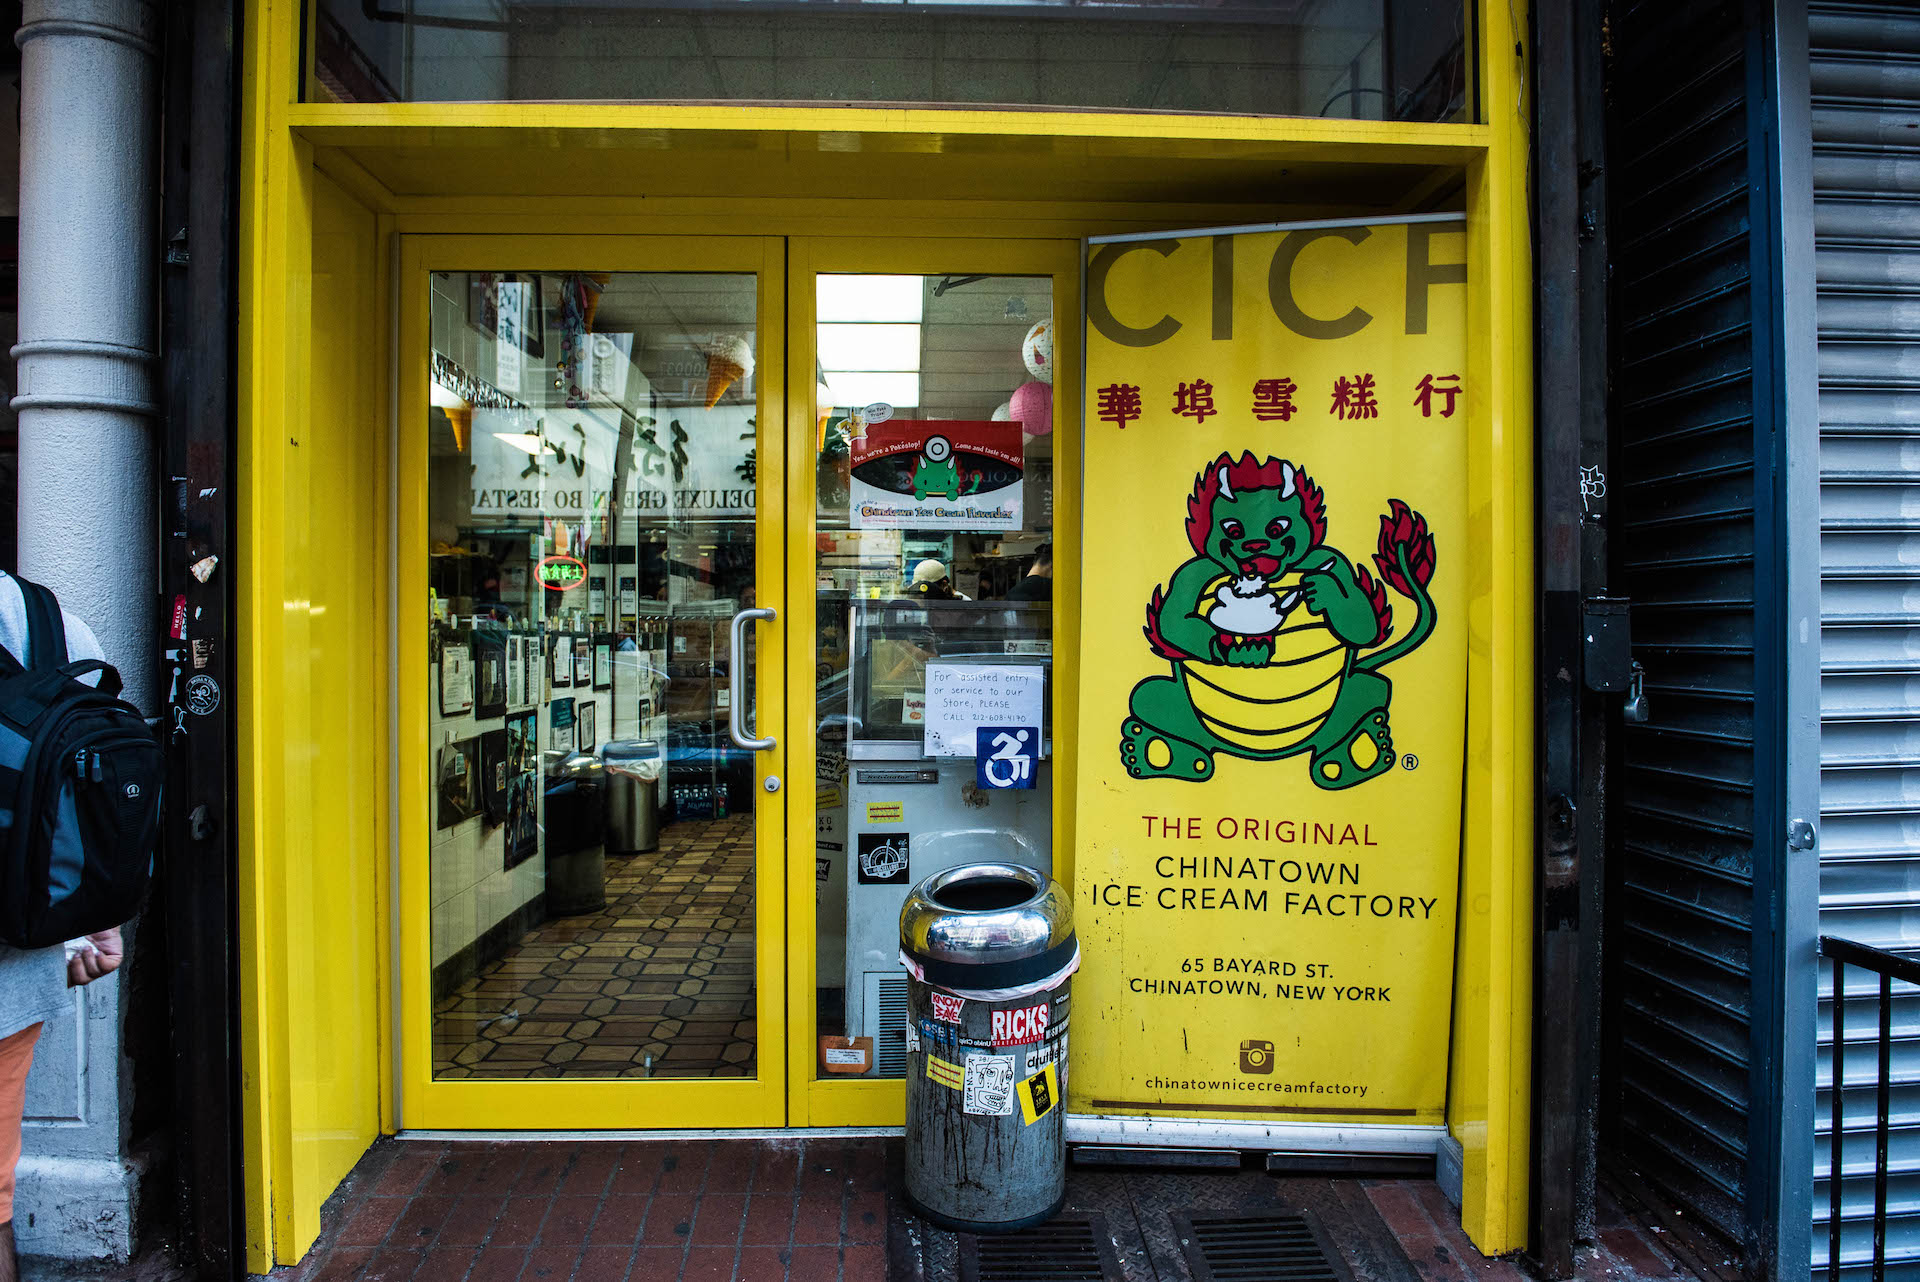 The Chinatown Ice Cream Factory has been run by Seid's family since the 1970s.